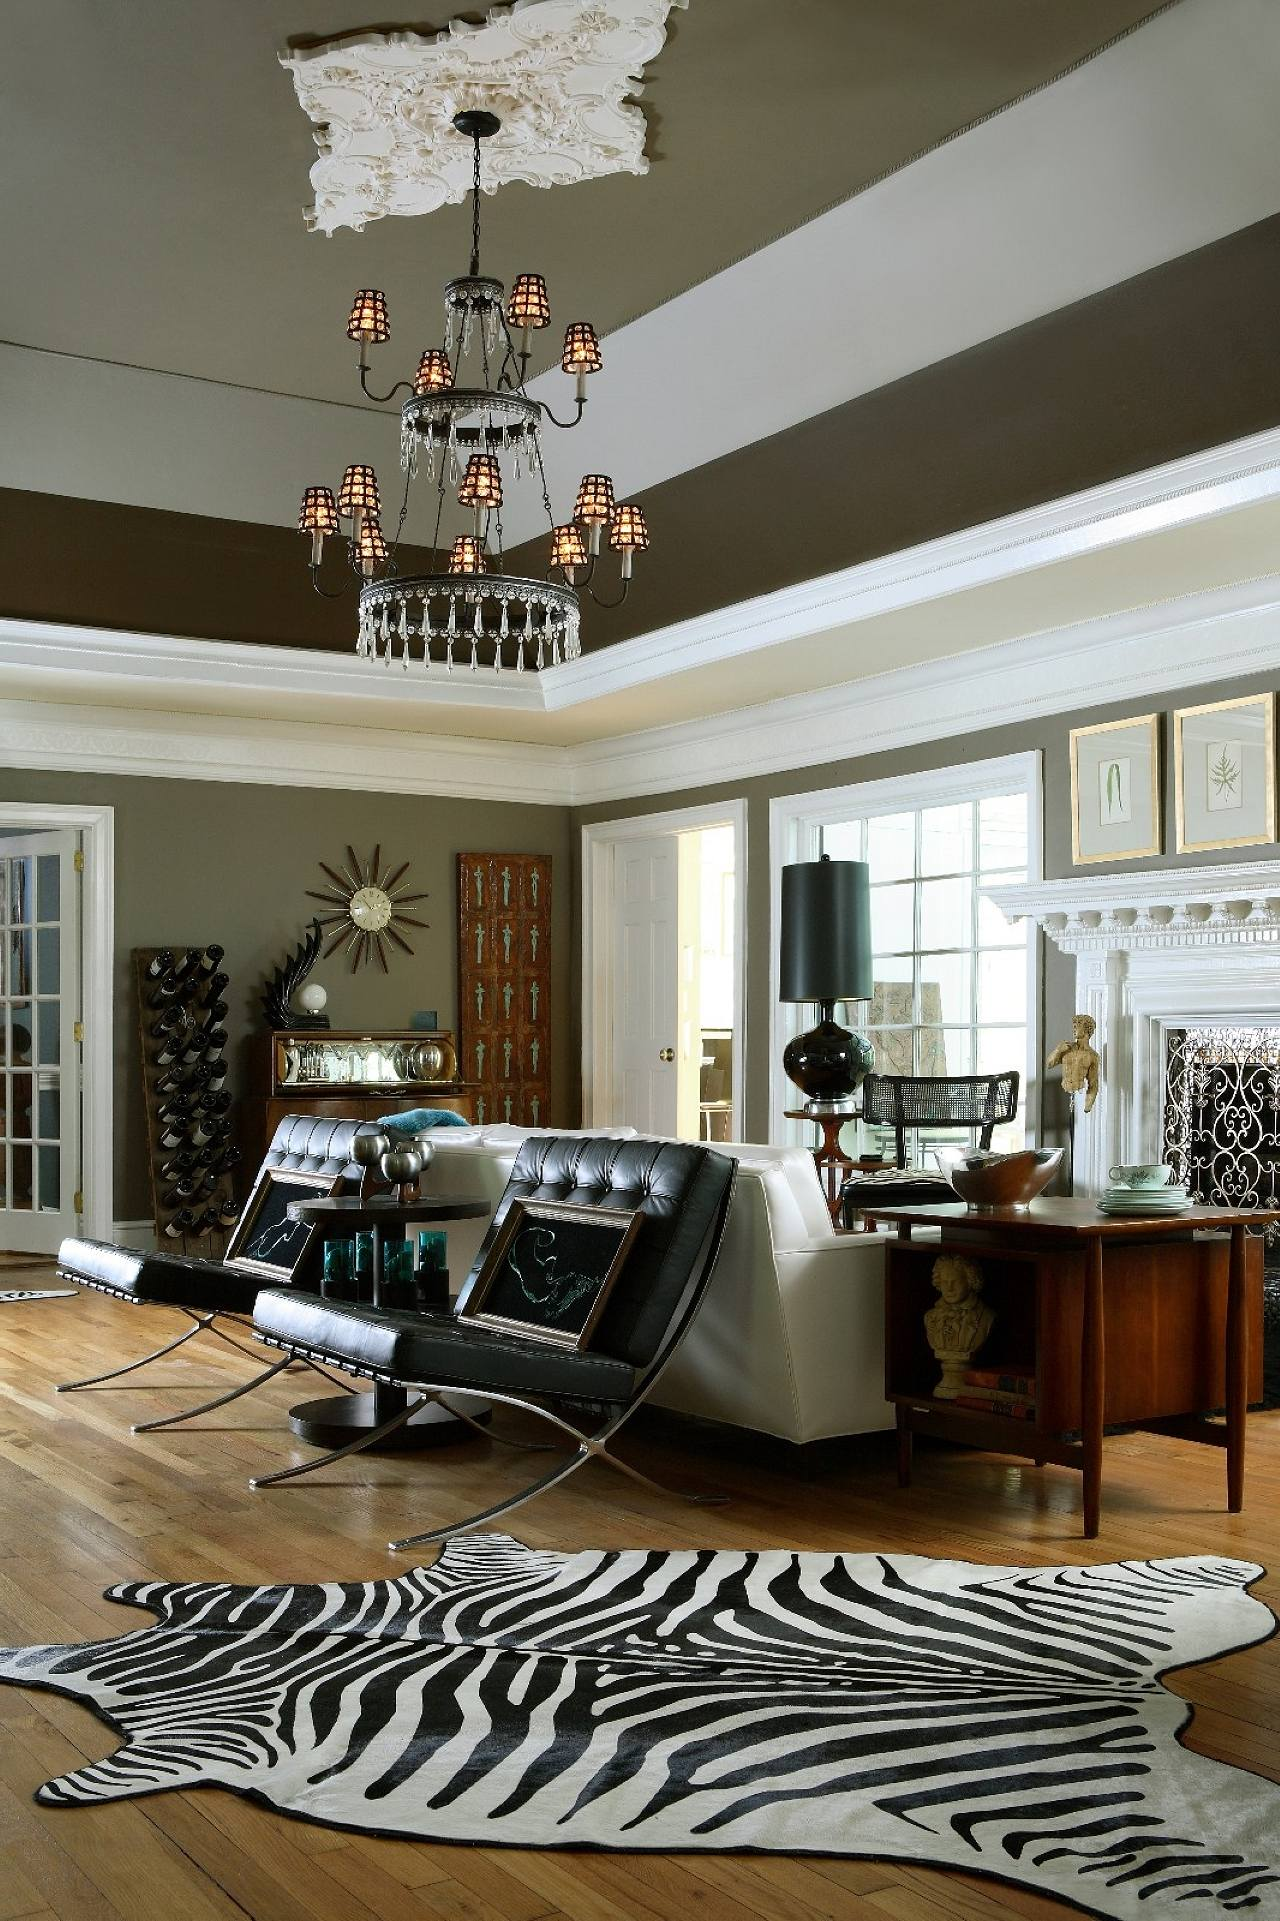 Captivating The Eclectic Style